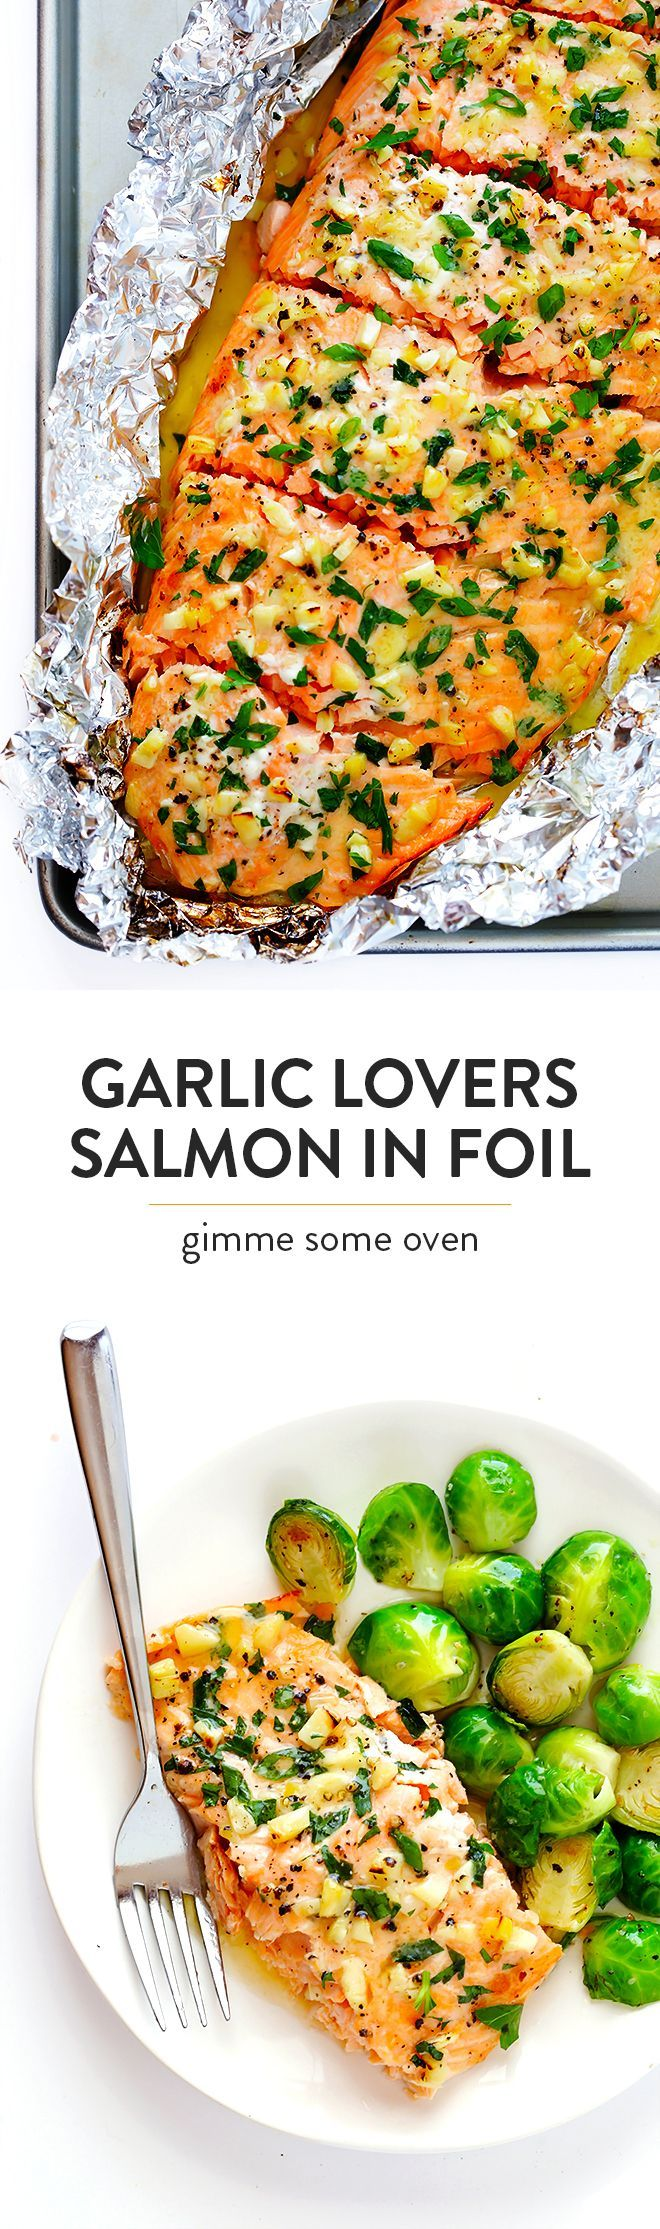 how to cook frozen salmon in the oven with foil